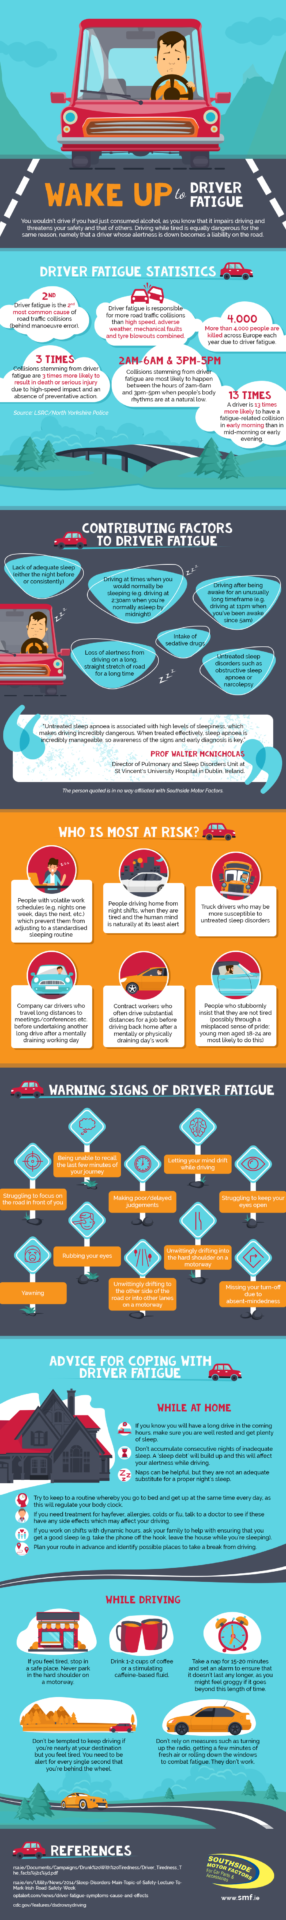 (Irl_UK) Driver fatigue kills 4,000 Europeans every year [Visual asset]